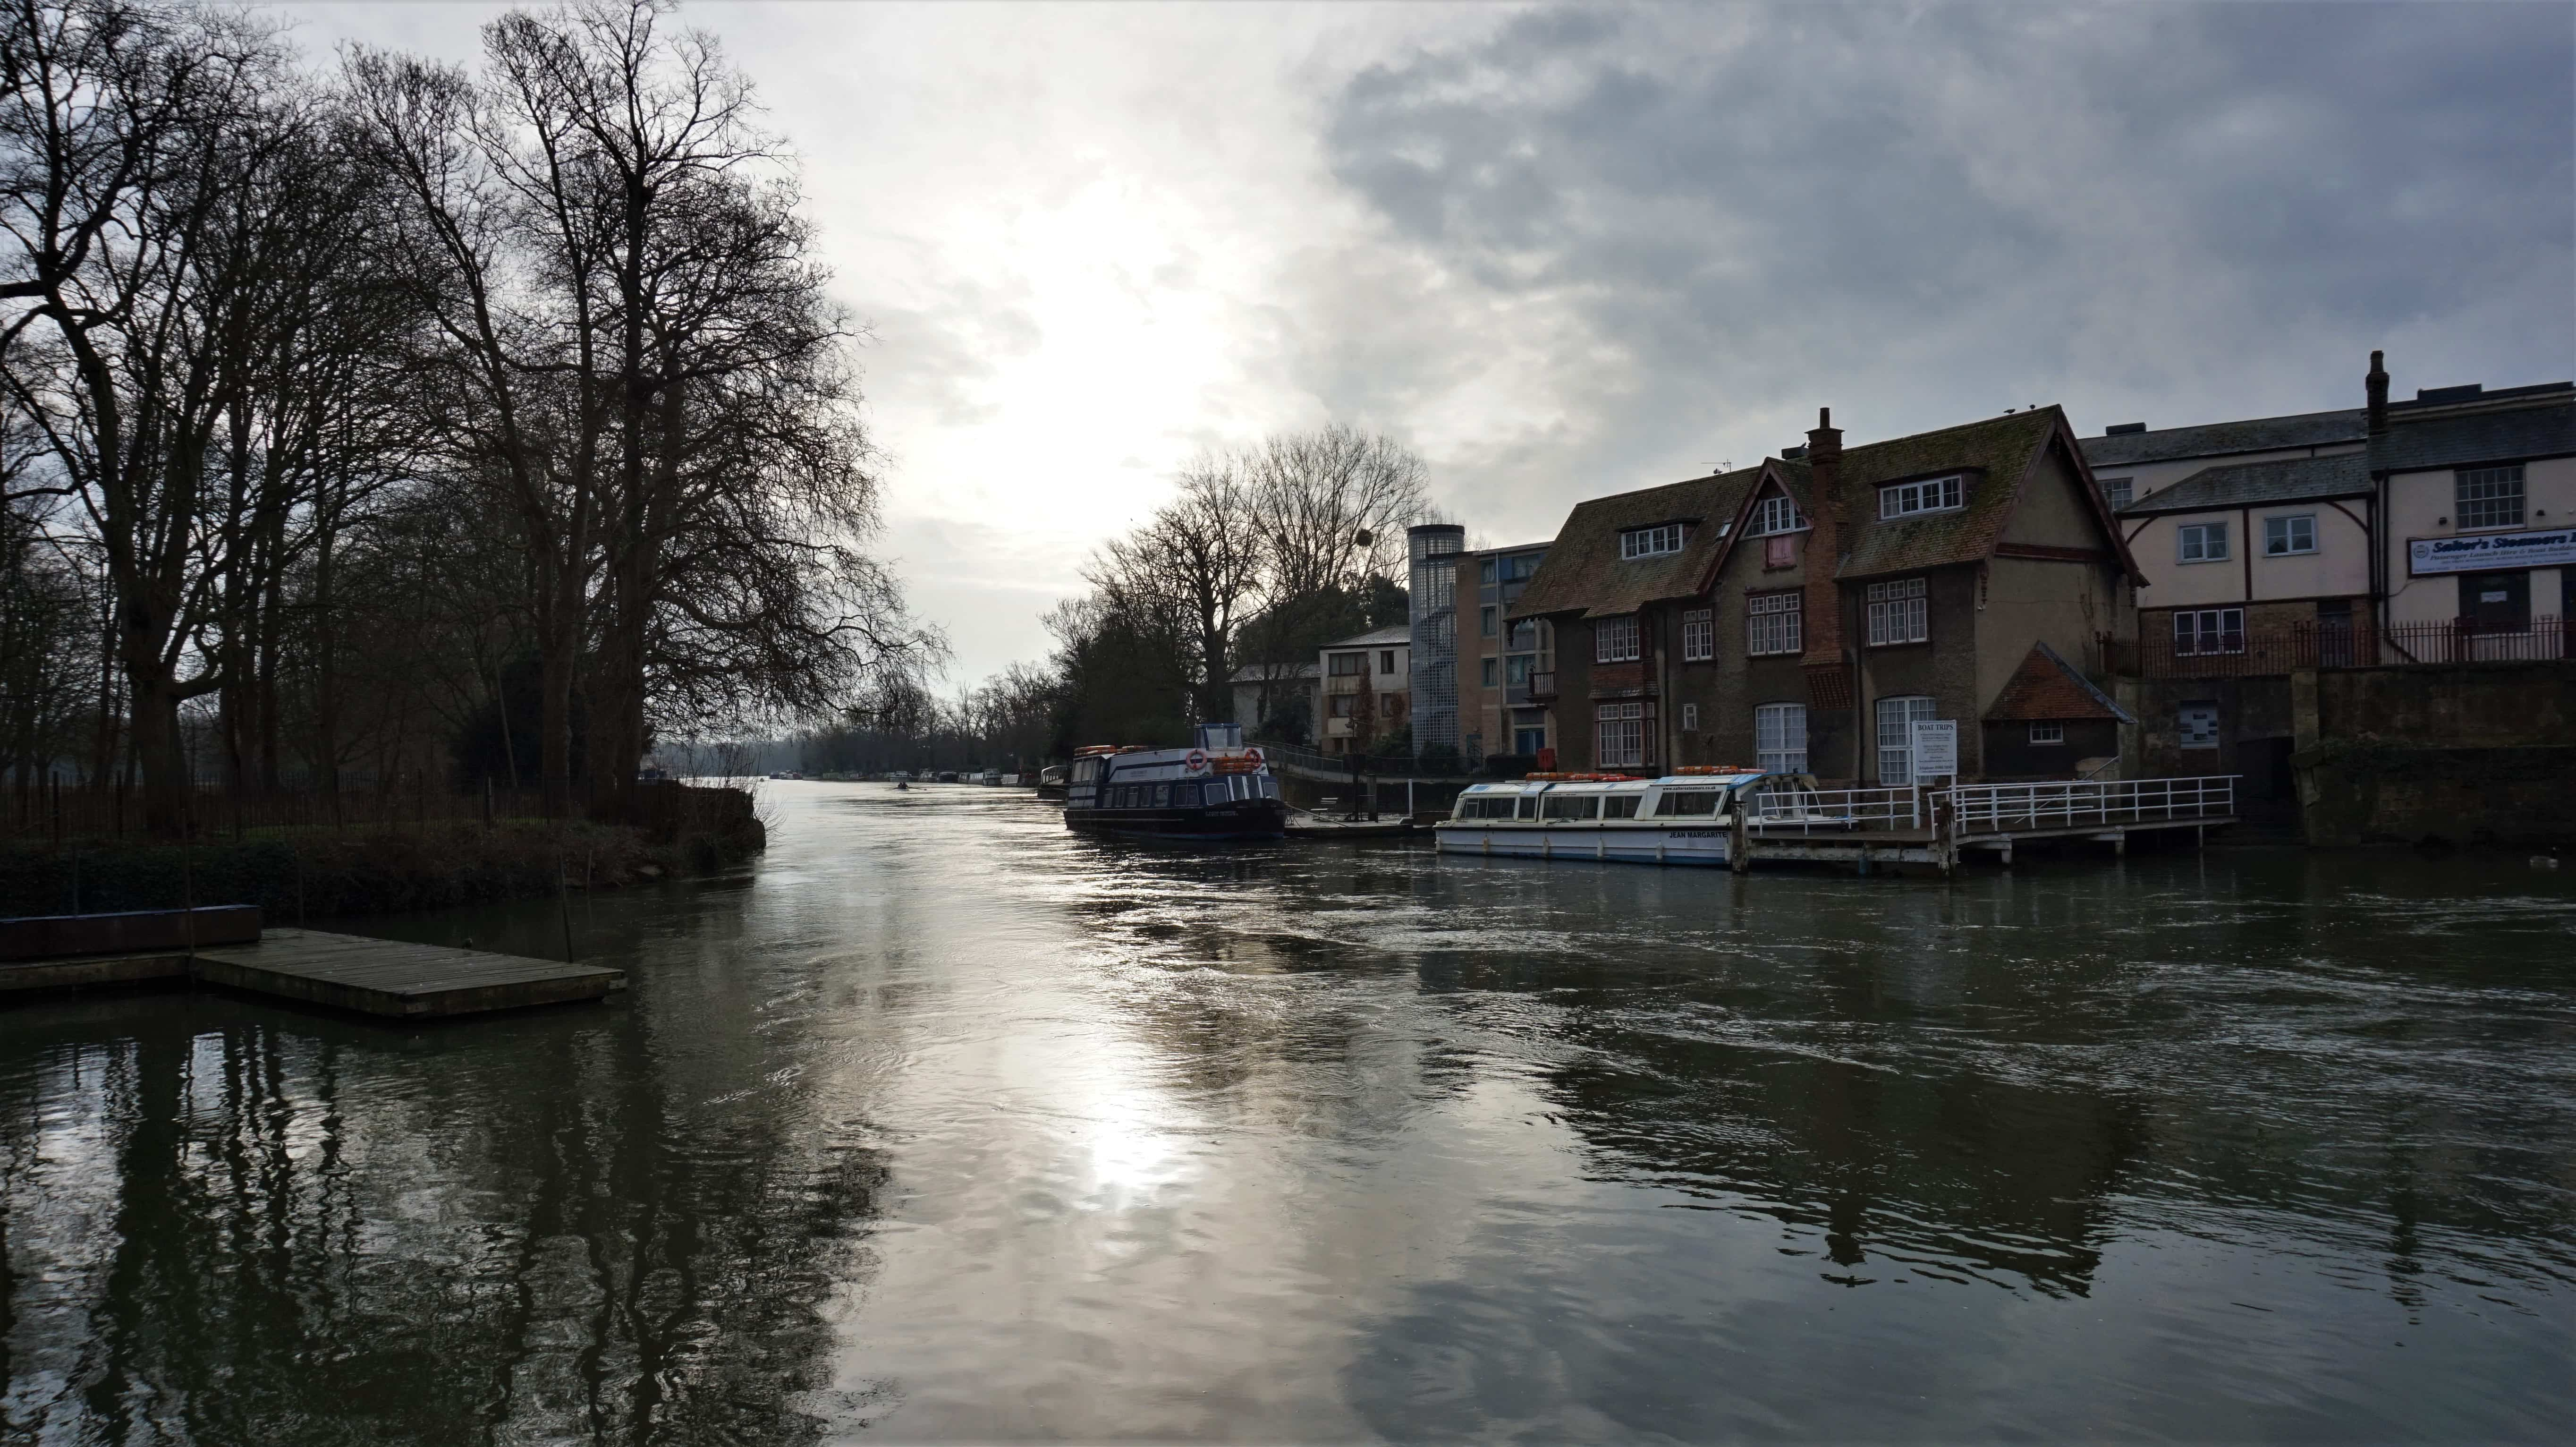 View of the Thames from The Head of the River in Oxford